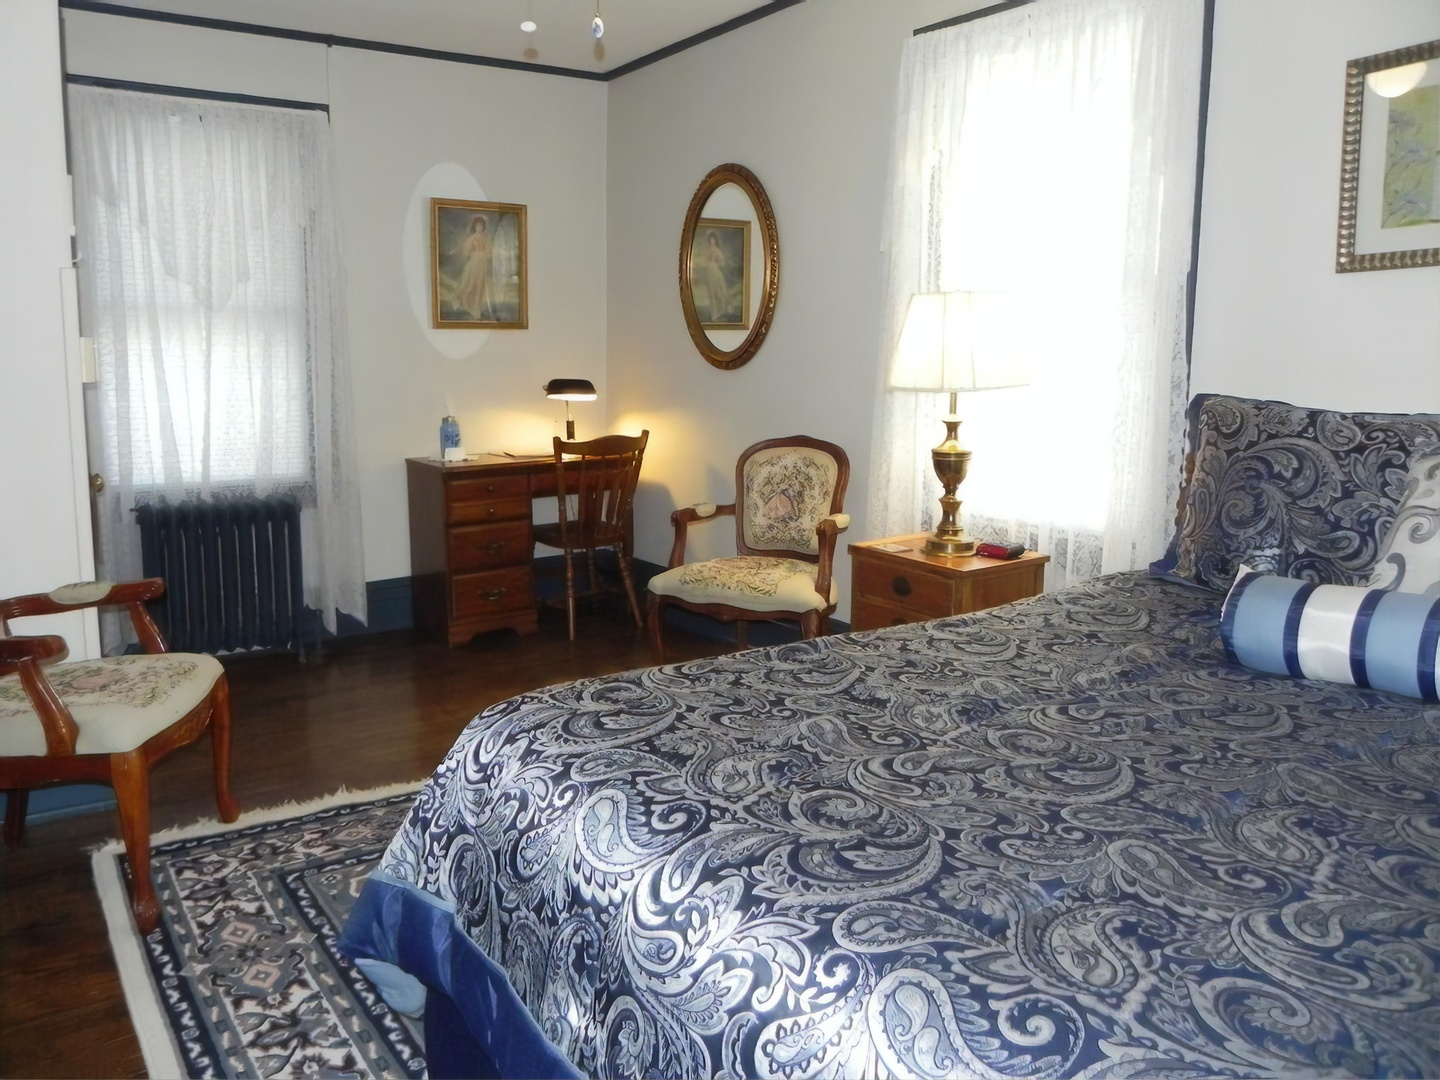 A bedroom with a bed and desk in a room at Vine Cottage Inn.